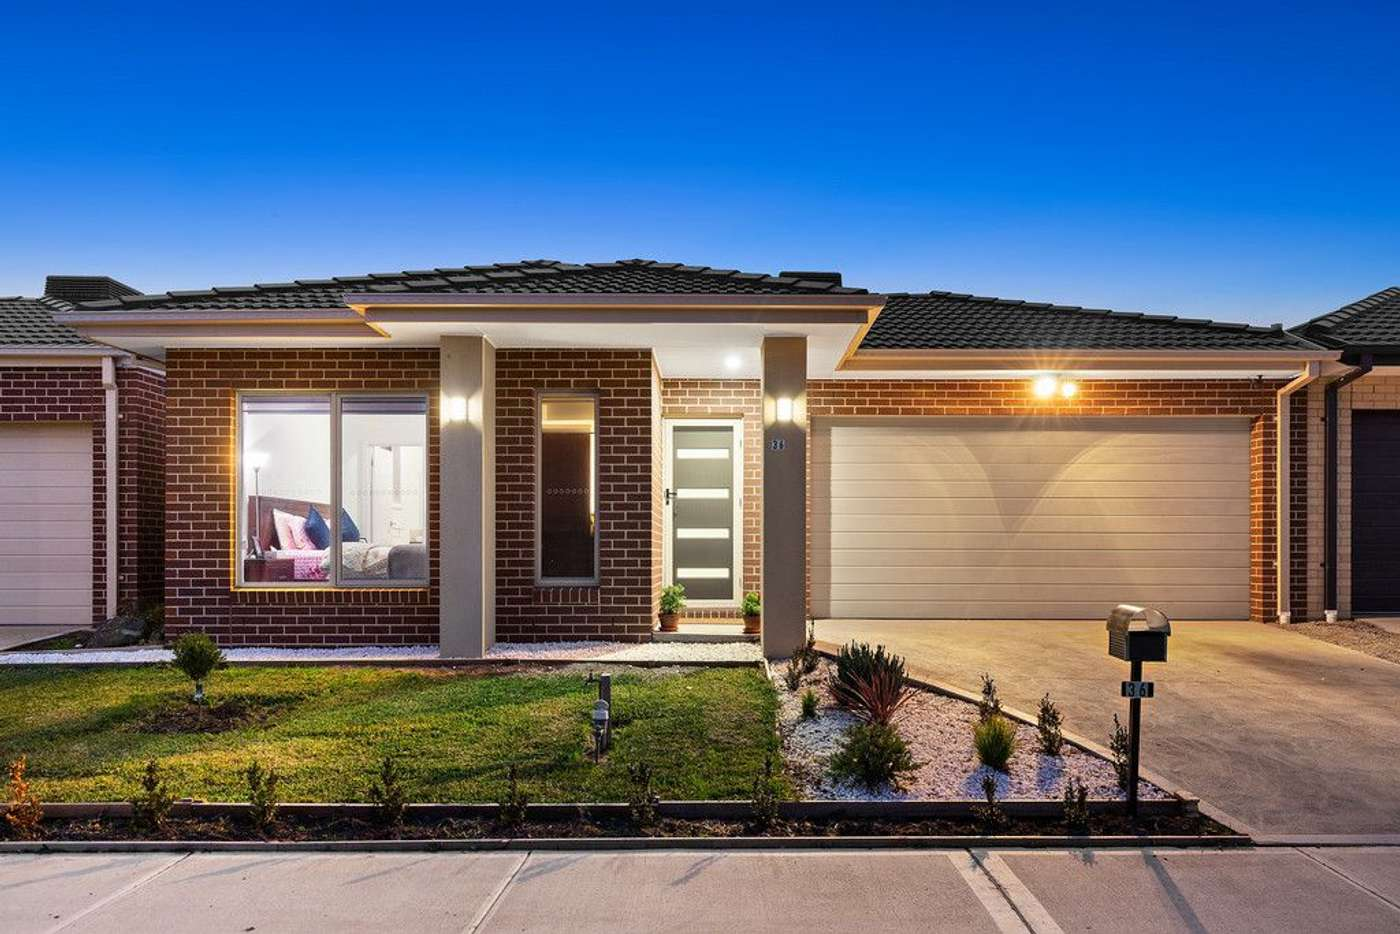 Main view of Homely house listing, 36 Adoquin Street, Doreen VIC 3754